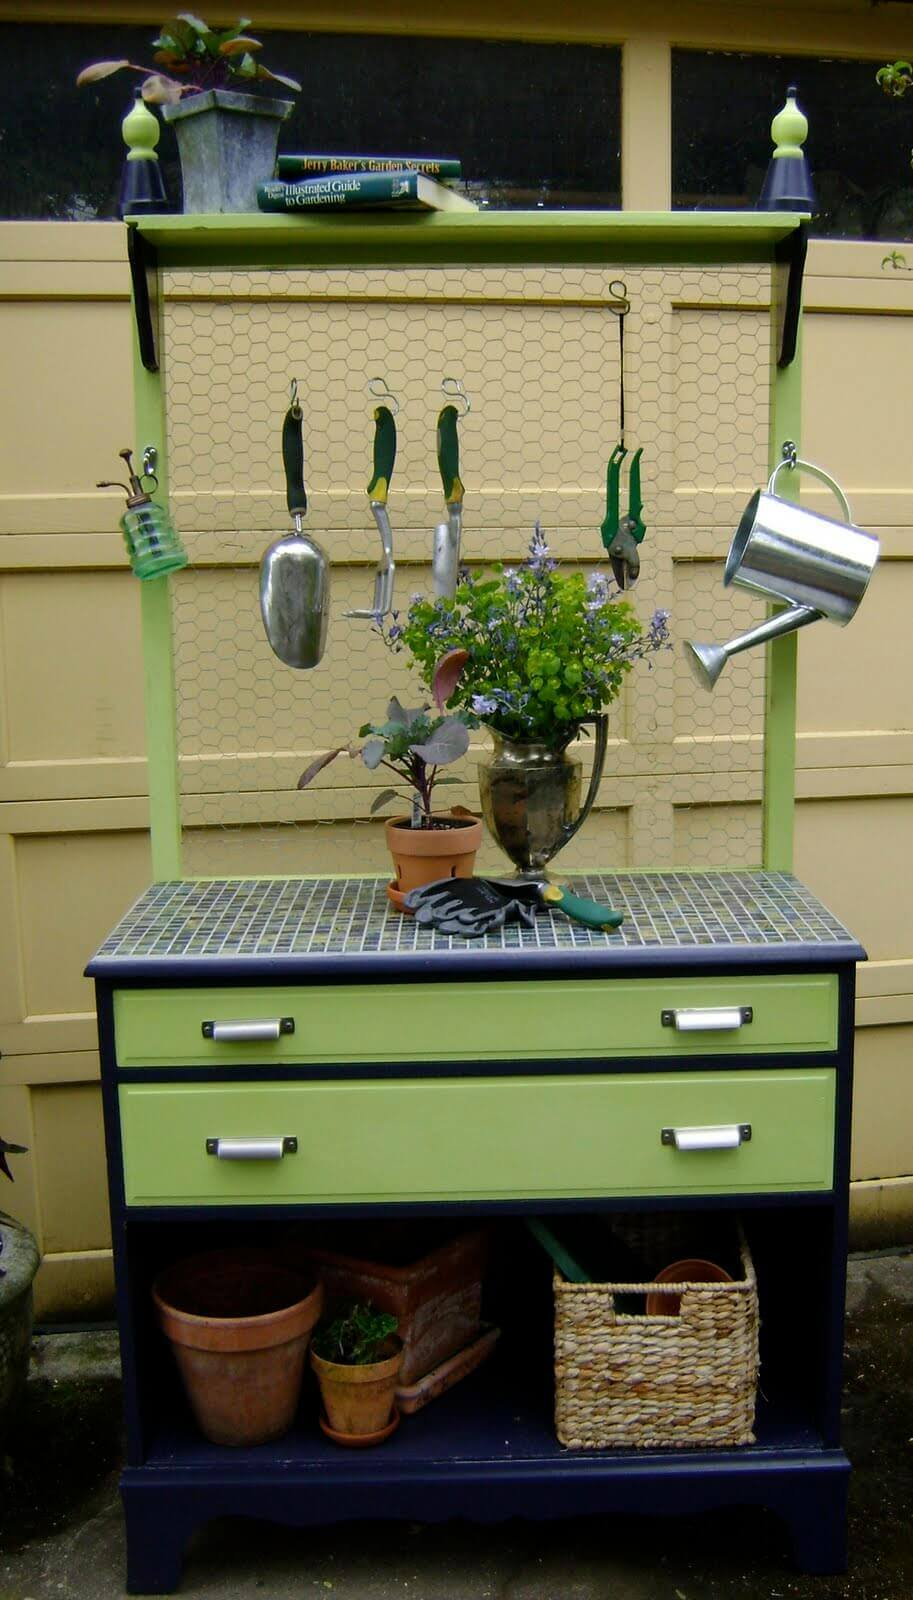 Tidy and Tiled Garden Tool Caddy